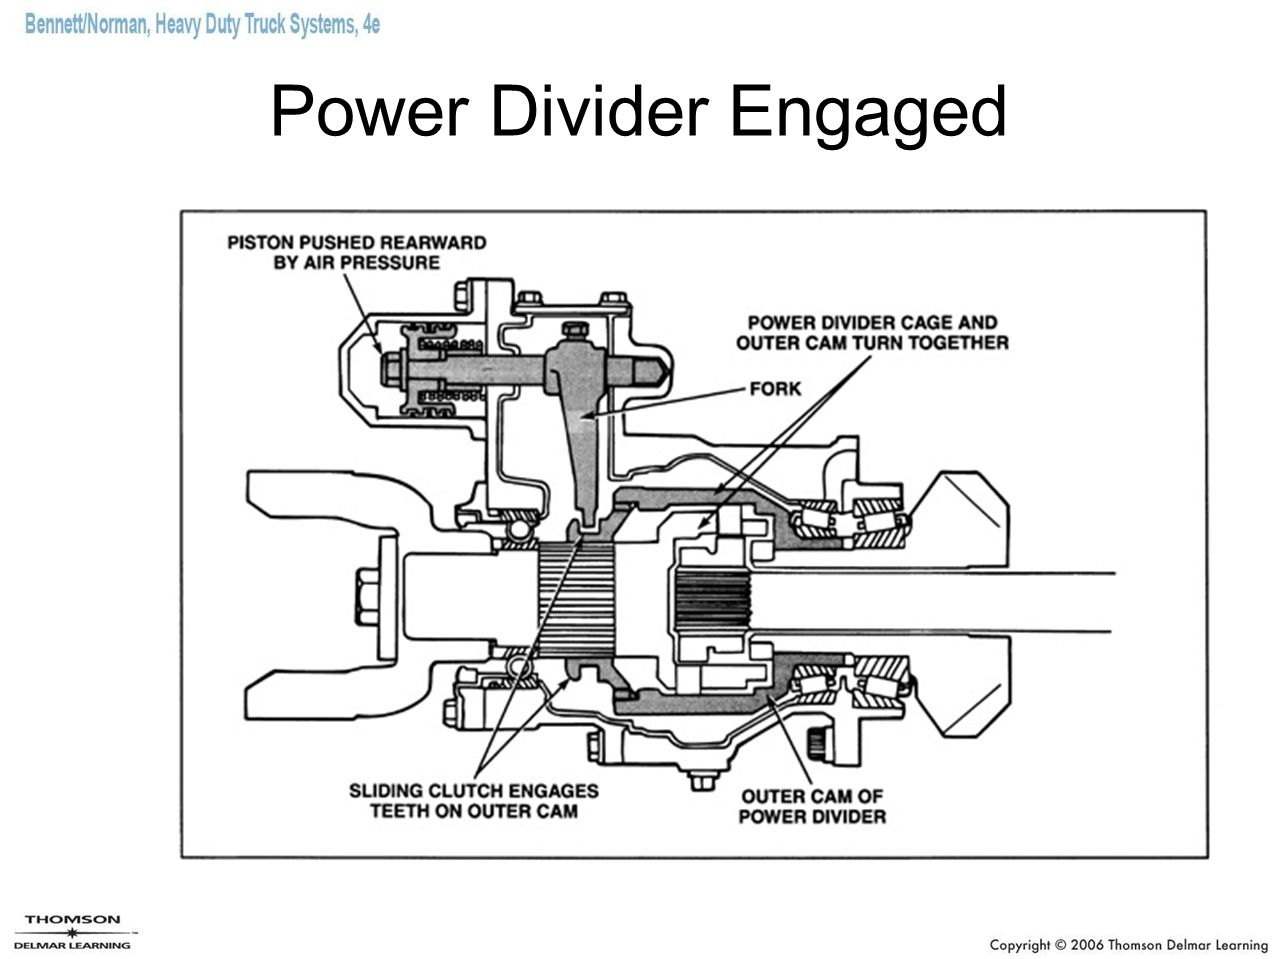 Rockwell Power Divider Exploded View Wwwimagessurecom